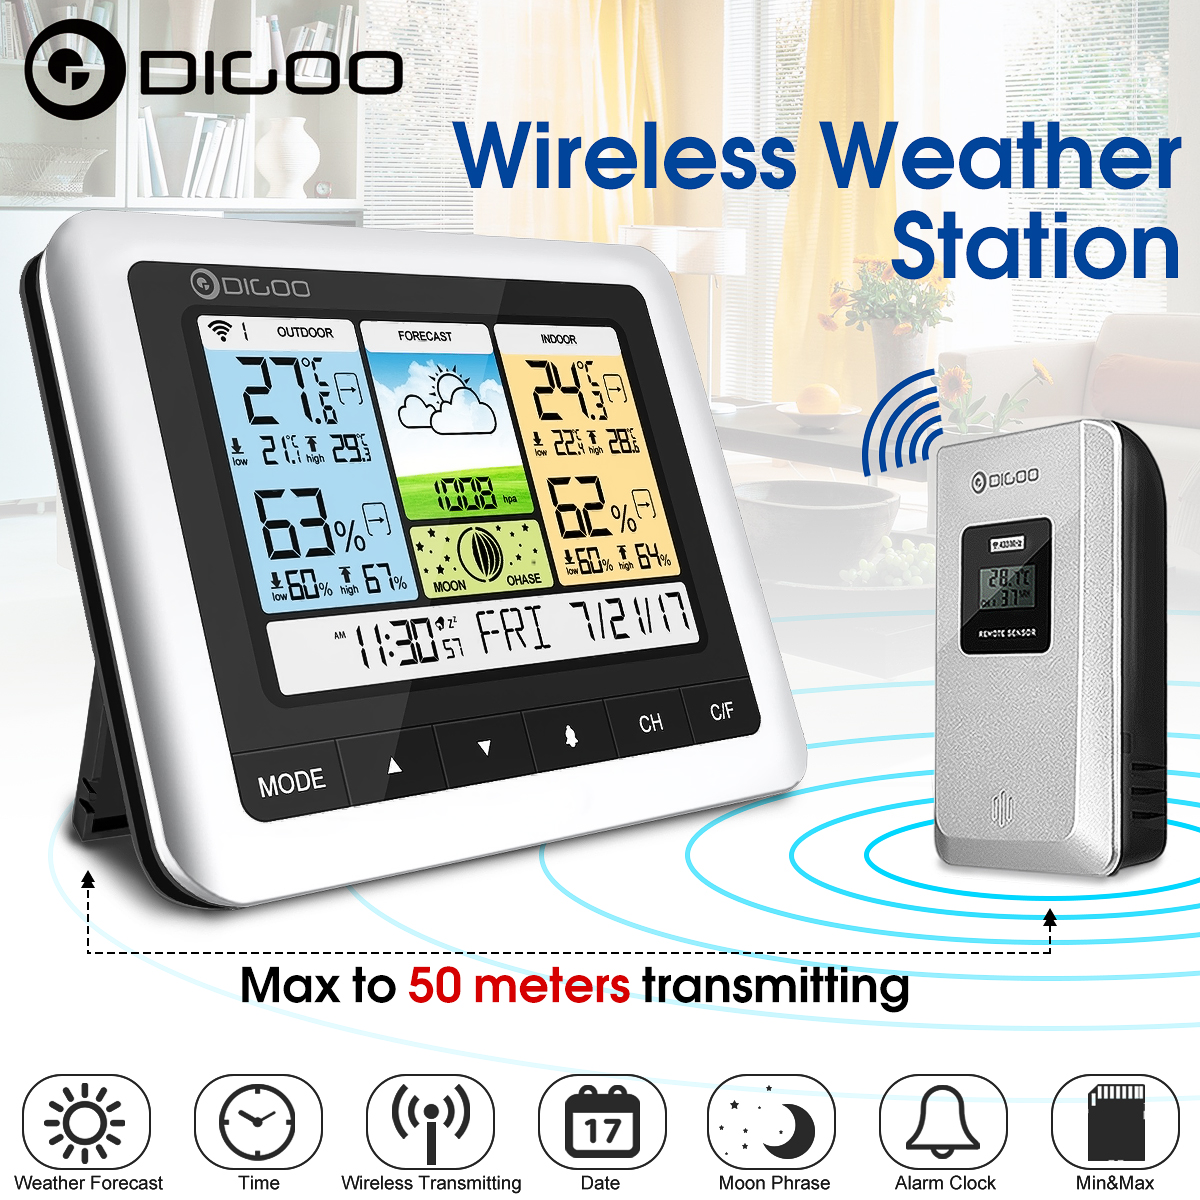 Digoo DG-TH8888 Colorful Wireless Weather Forecast Station with Sensor Indoor Outdoor Thermometer Hygrometer Barometer Snooze weather forecast Desk Alarm Clock Temperature Humidity Moon Phase Meter